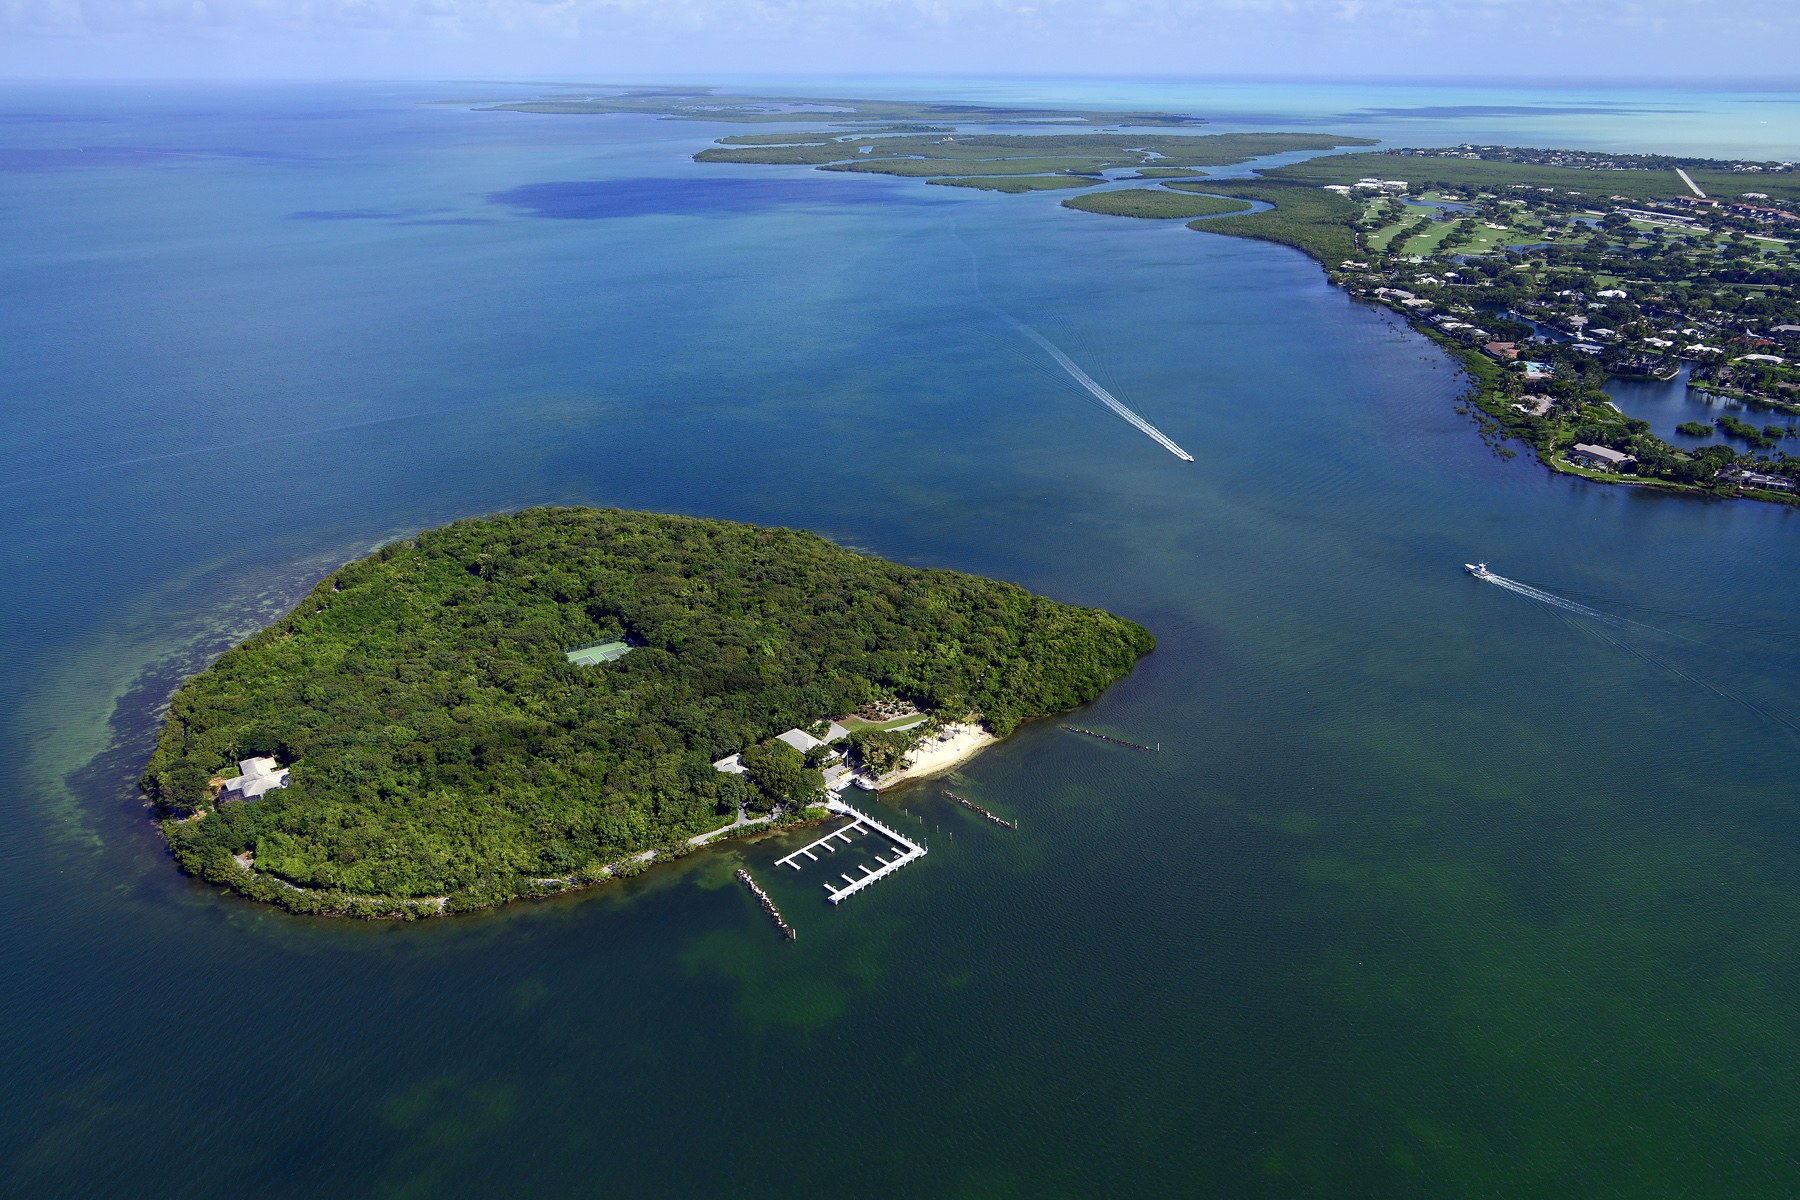 for Sale at Pumpkin Key - Private Island, Key Largo, FL Pumpkin Key - Private Island Key Largo, Florida 33037 United States